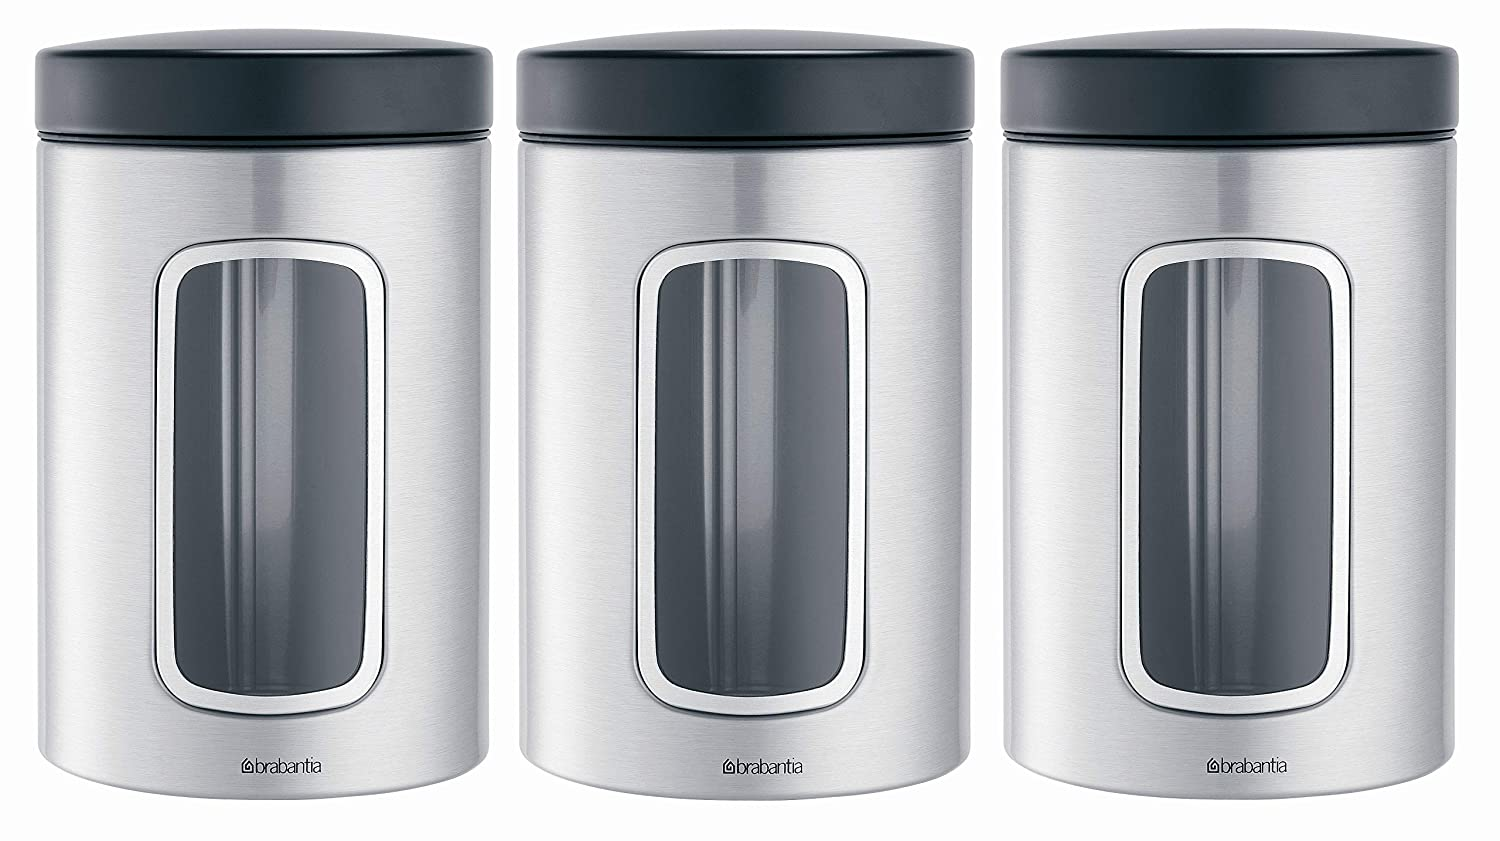 Brabantia Window Canister - White - 1.4 litre - Pack of 3 151224